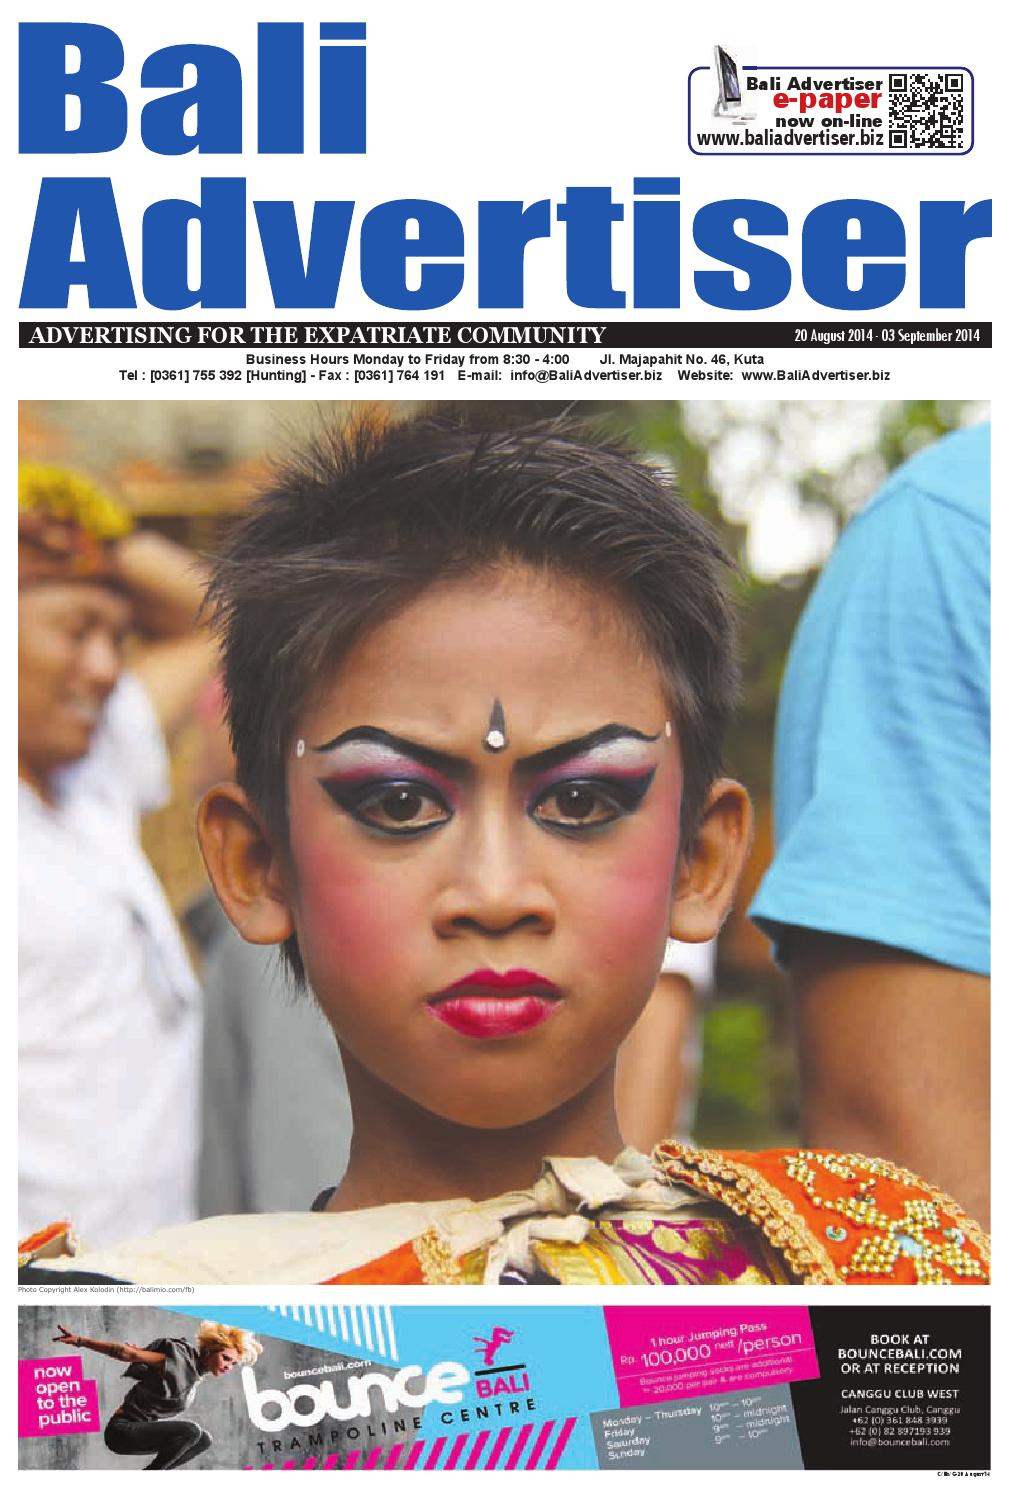 Ba 20 August 2014 By Bali Advertiser Issuu Kebaya Lestari Putih 1185r